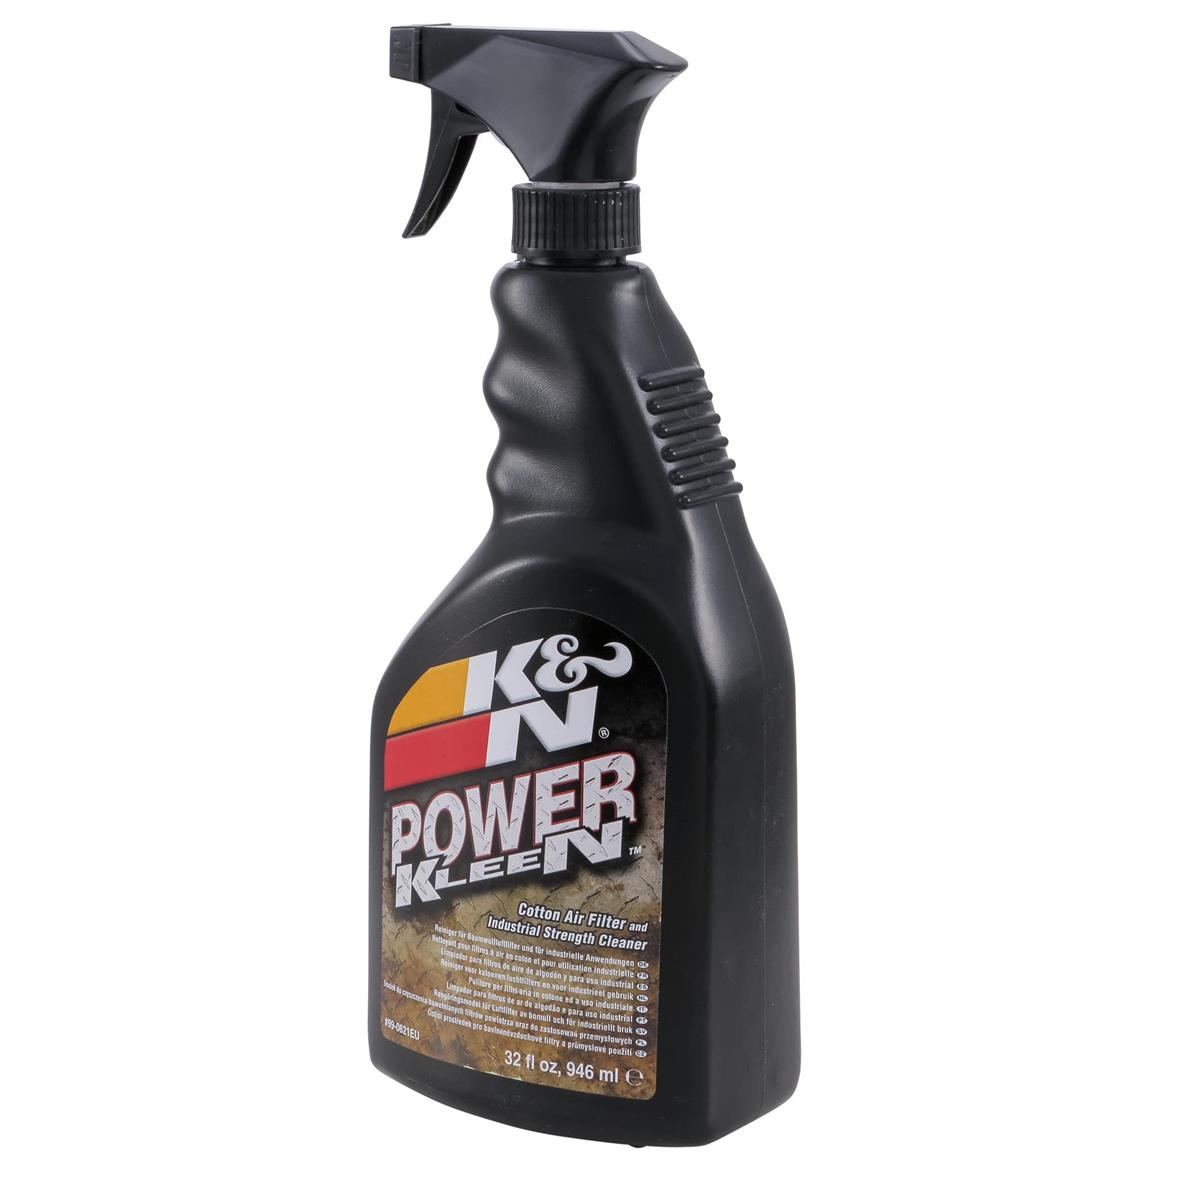 """Product Image for 'Air Filter Cleaner K&N """"POWER KLEEN""""Title'"""